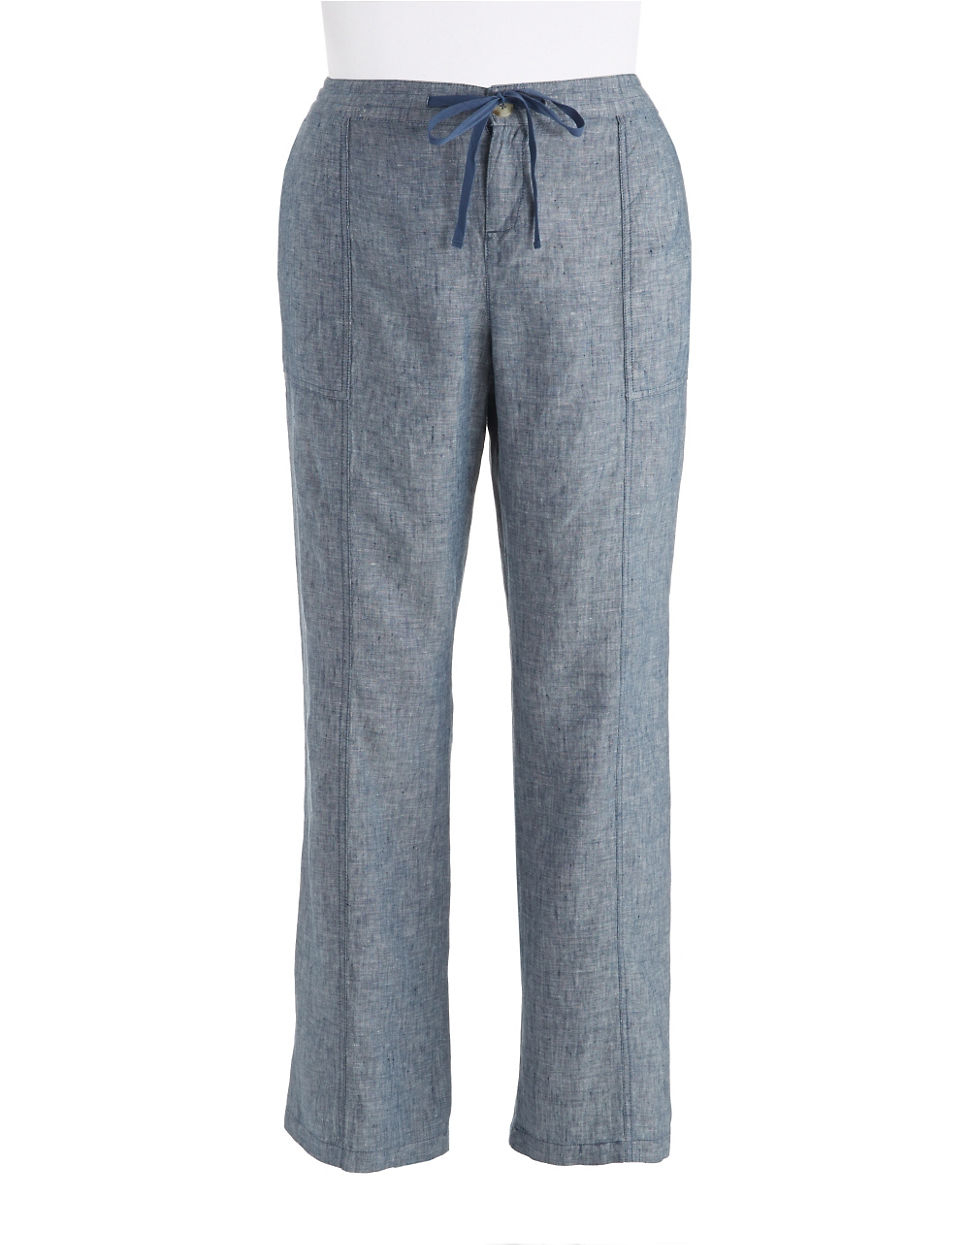 Lord & taylor Chambray Linen Pants With Drawstring Waist in Gray ...